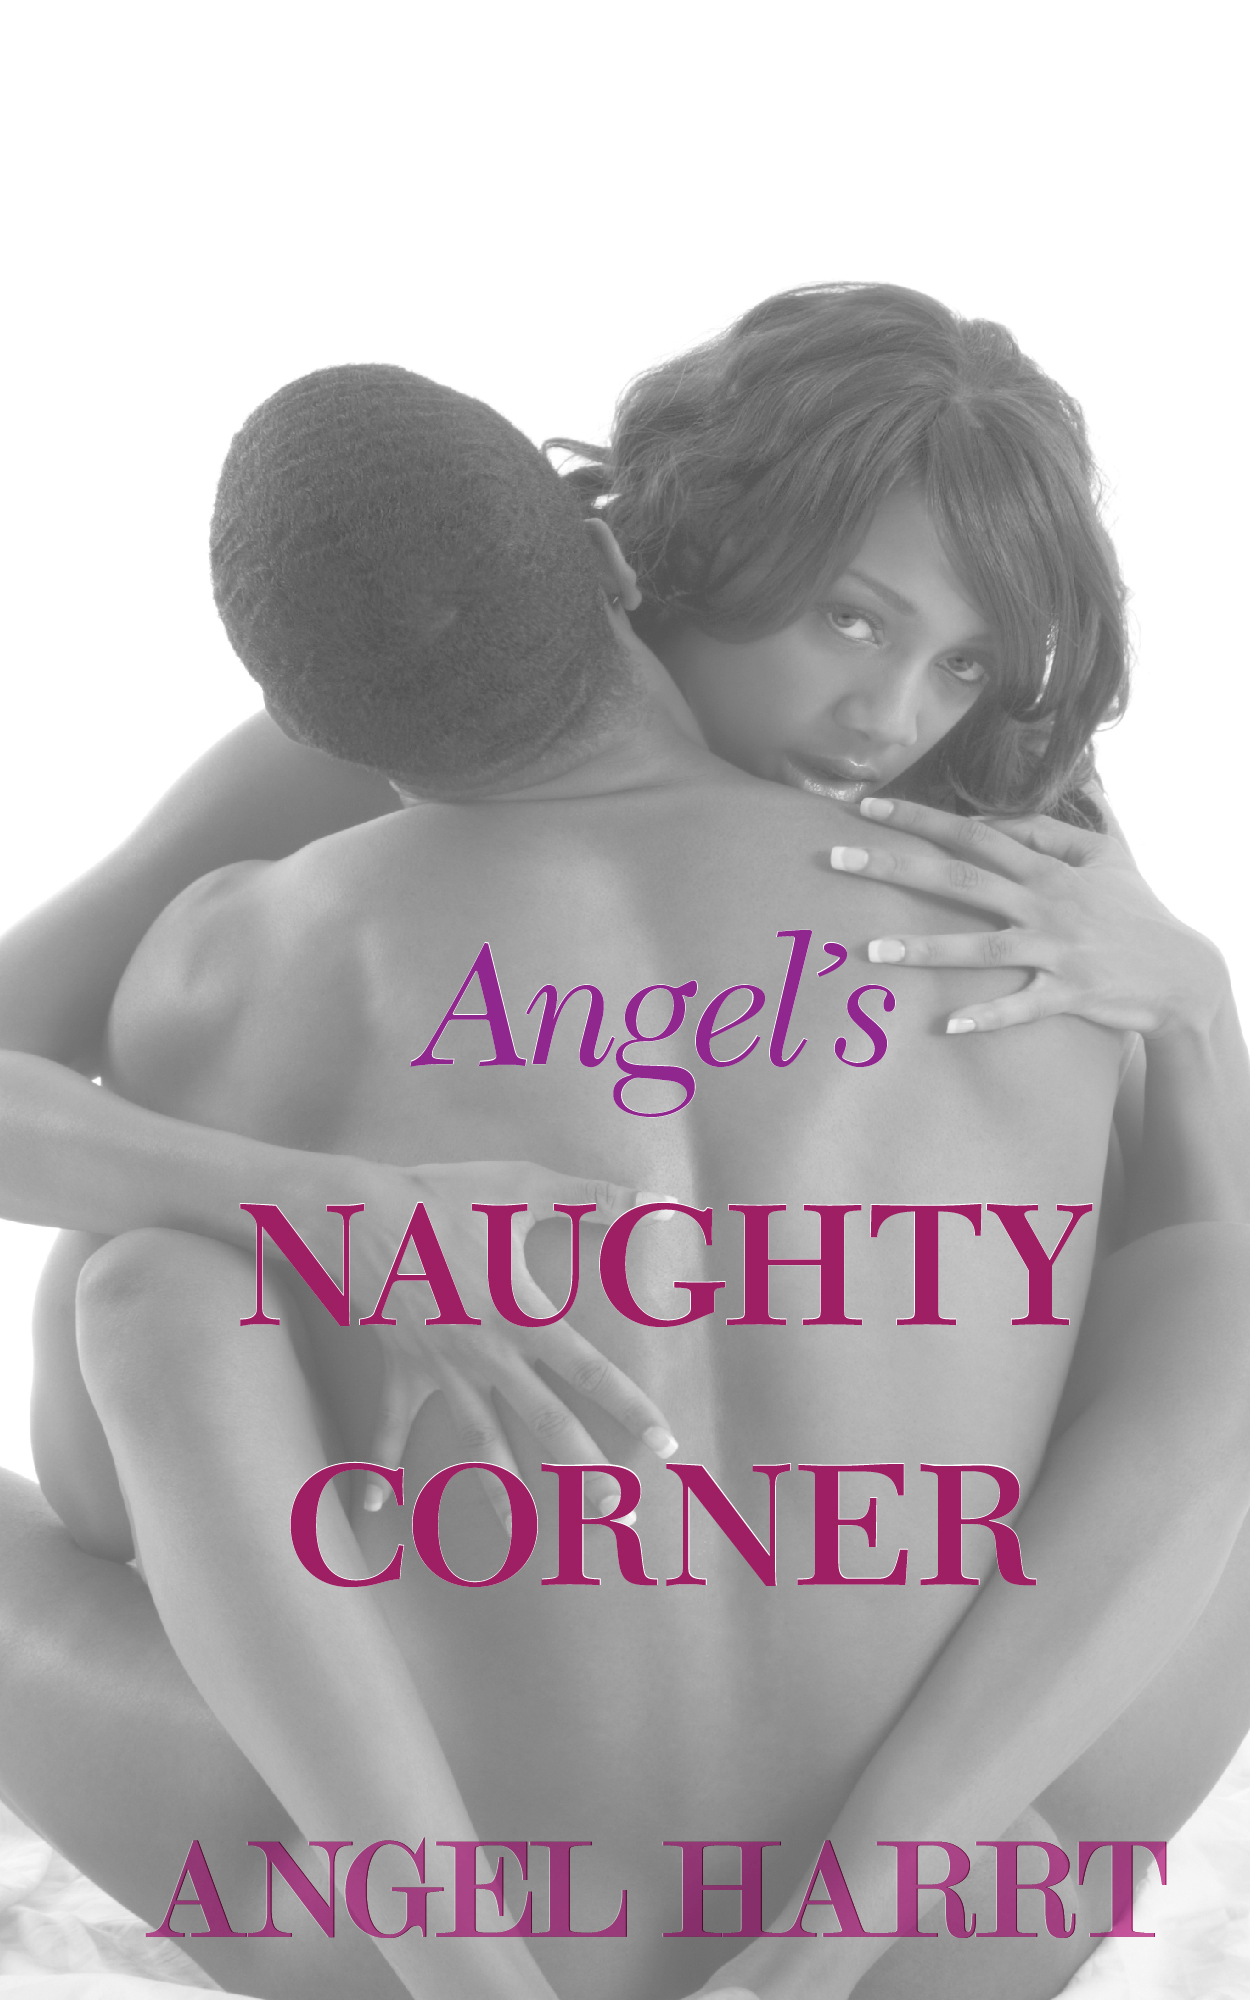 Angel's Naughty Corner